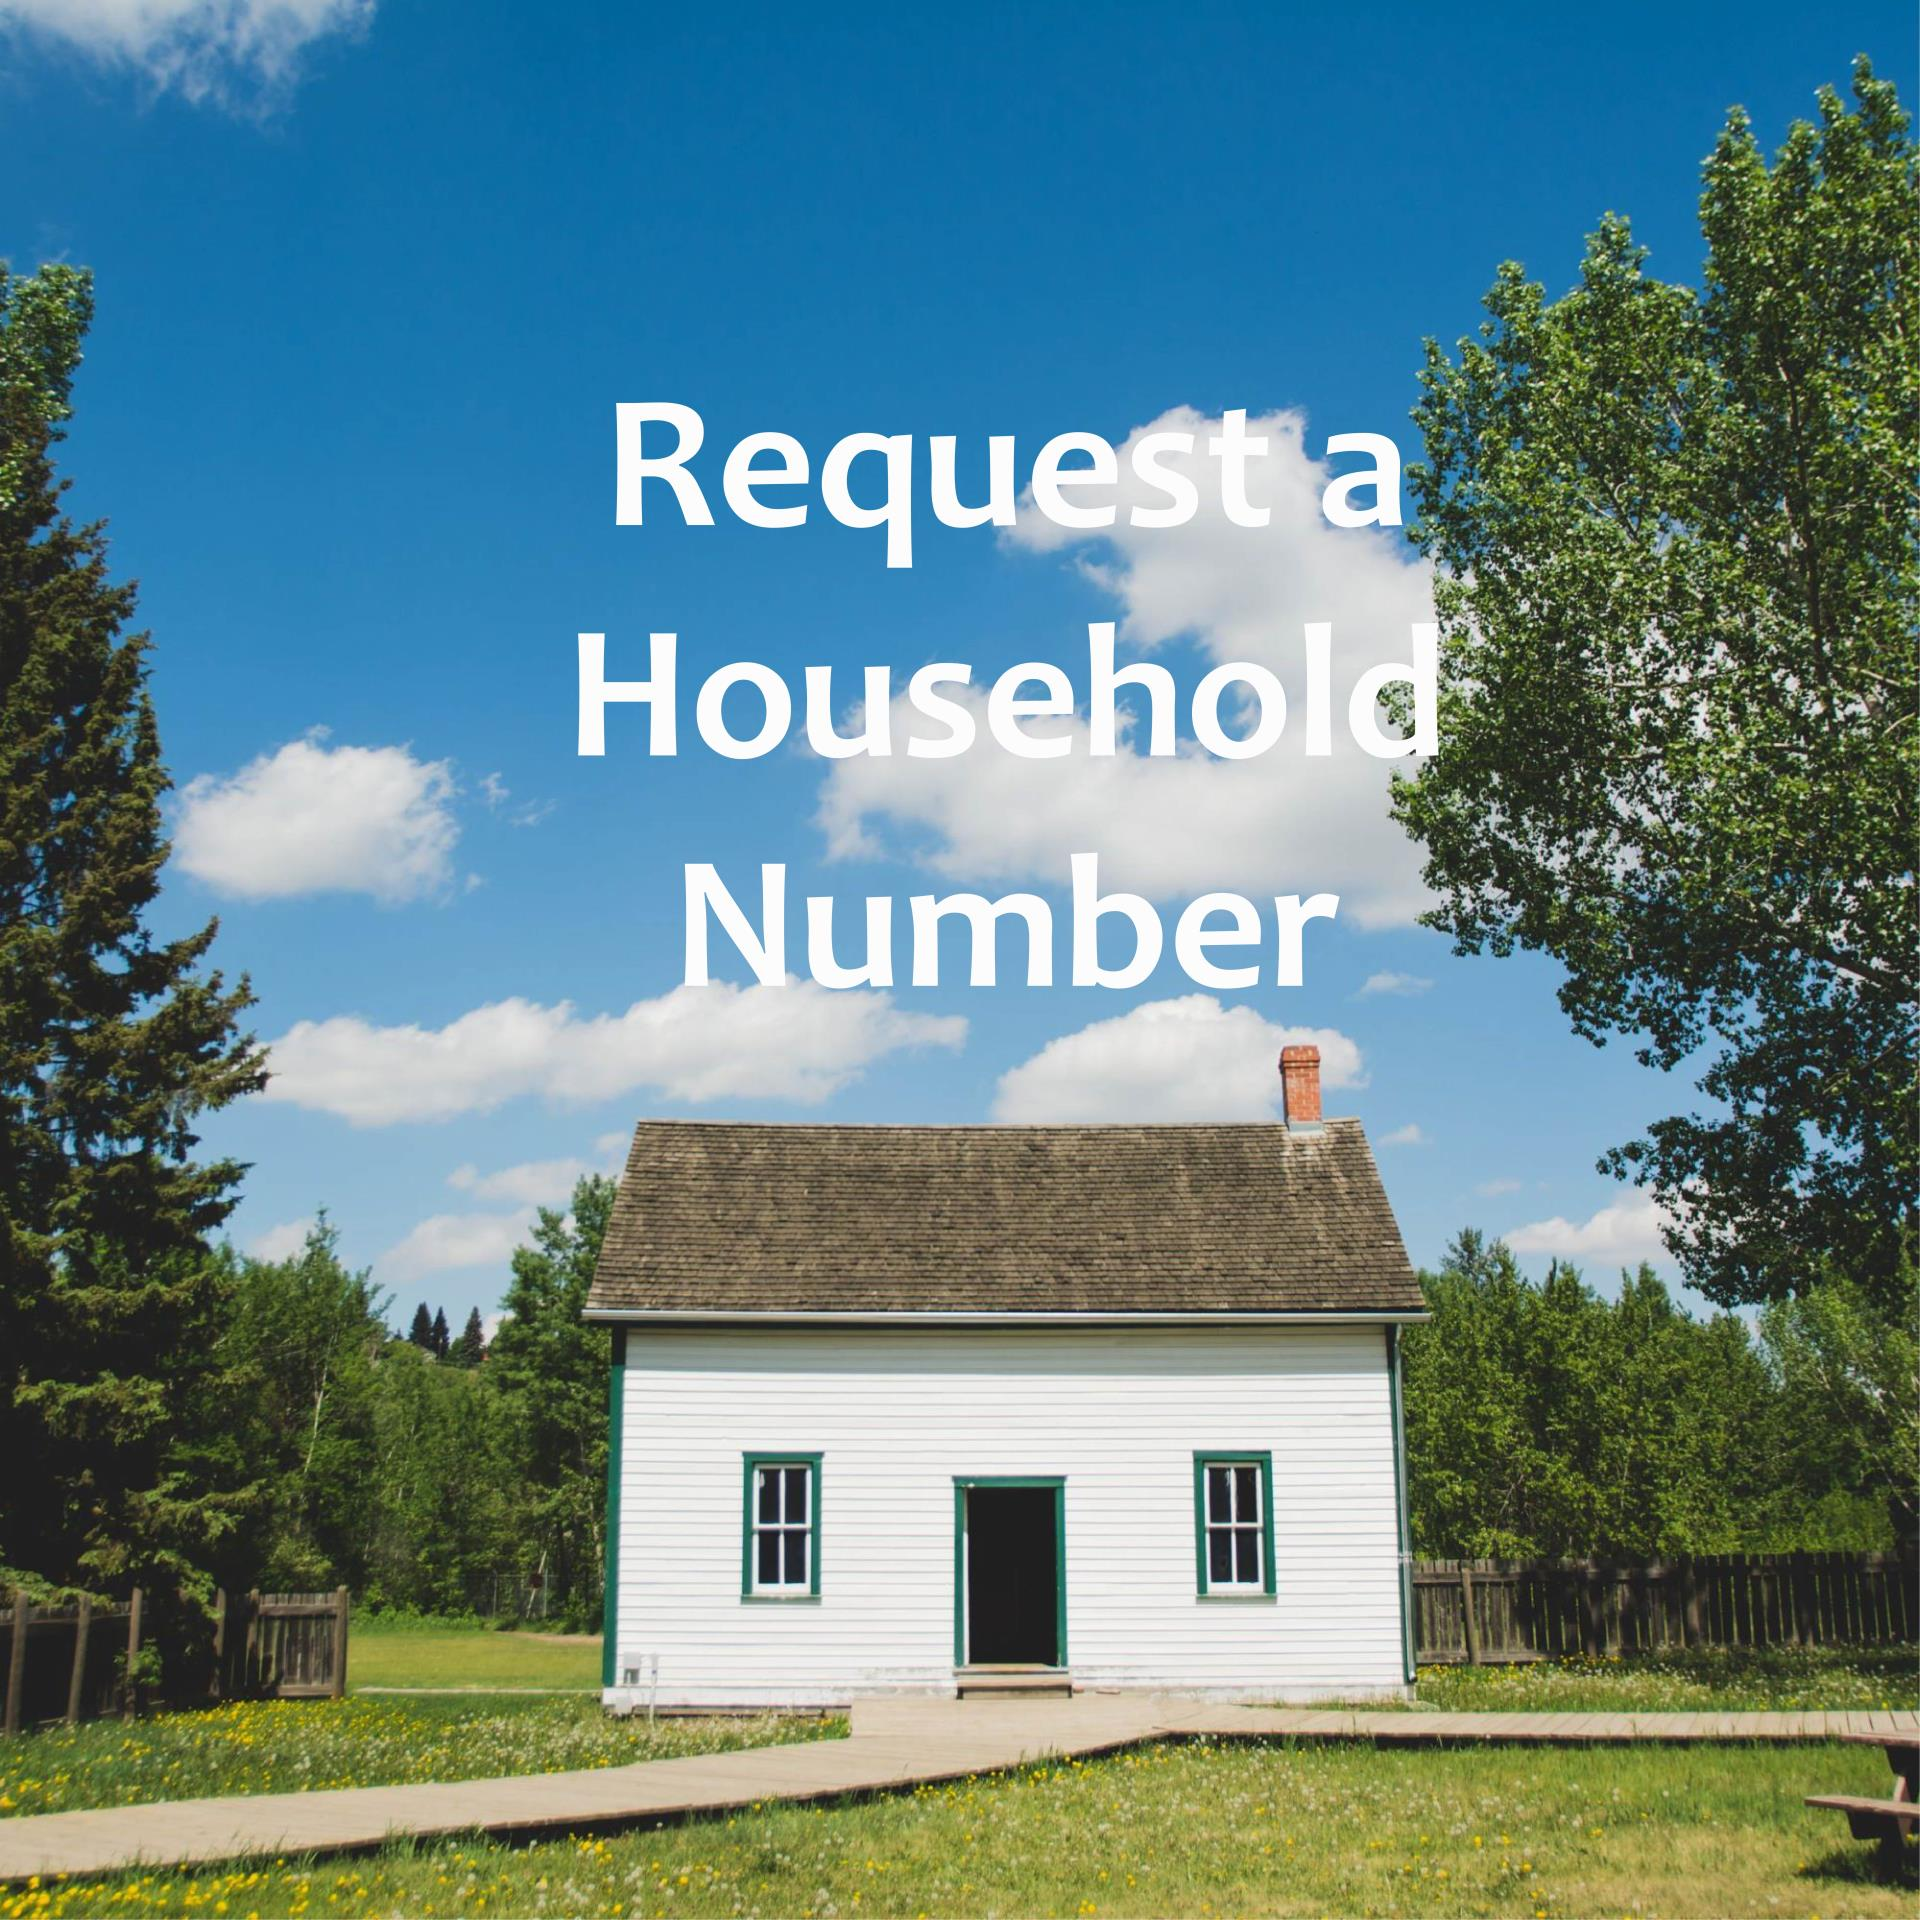 request household number